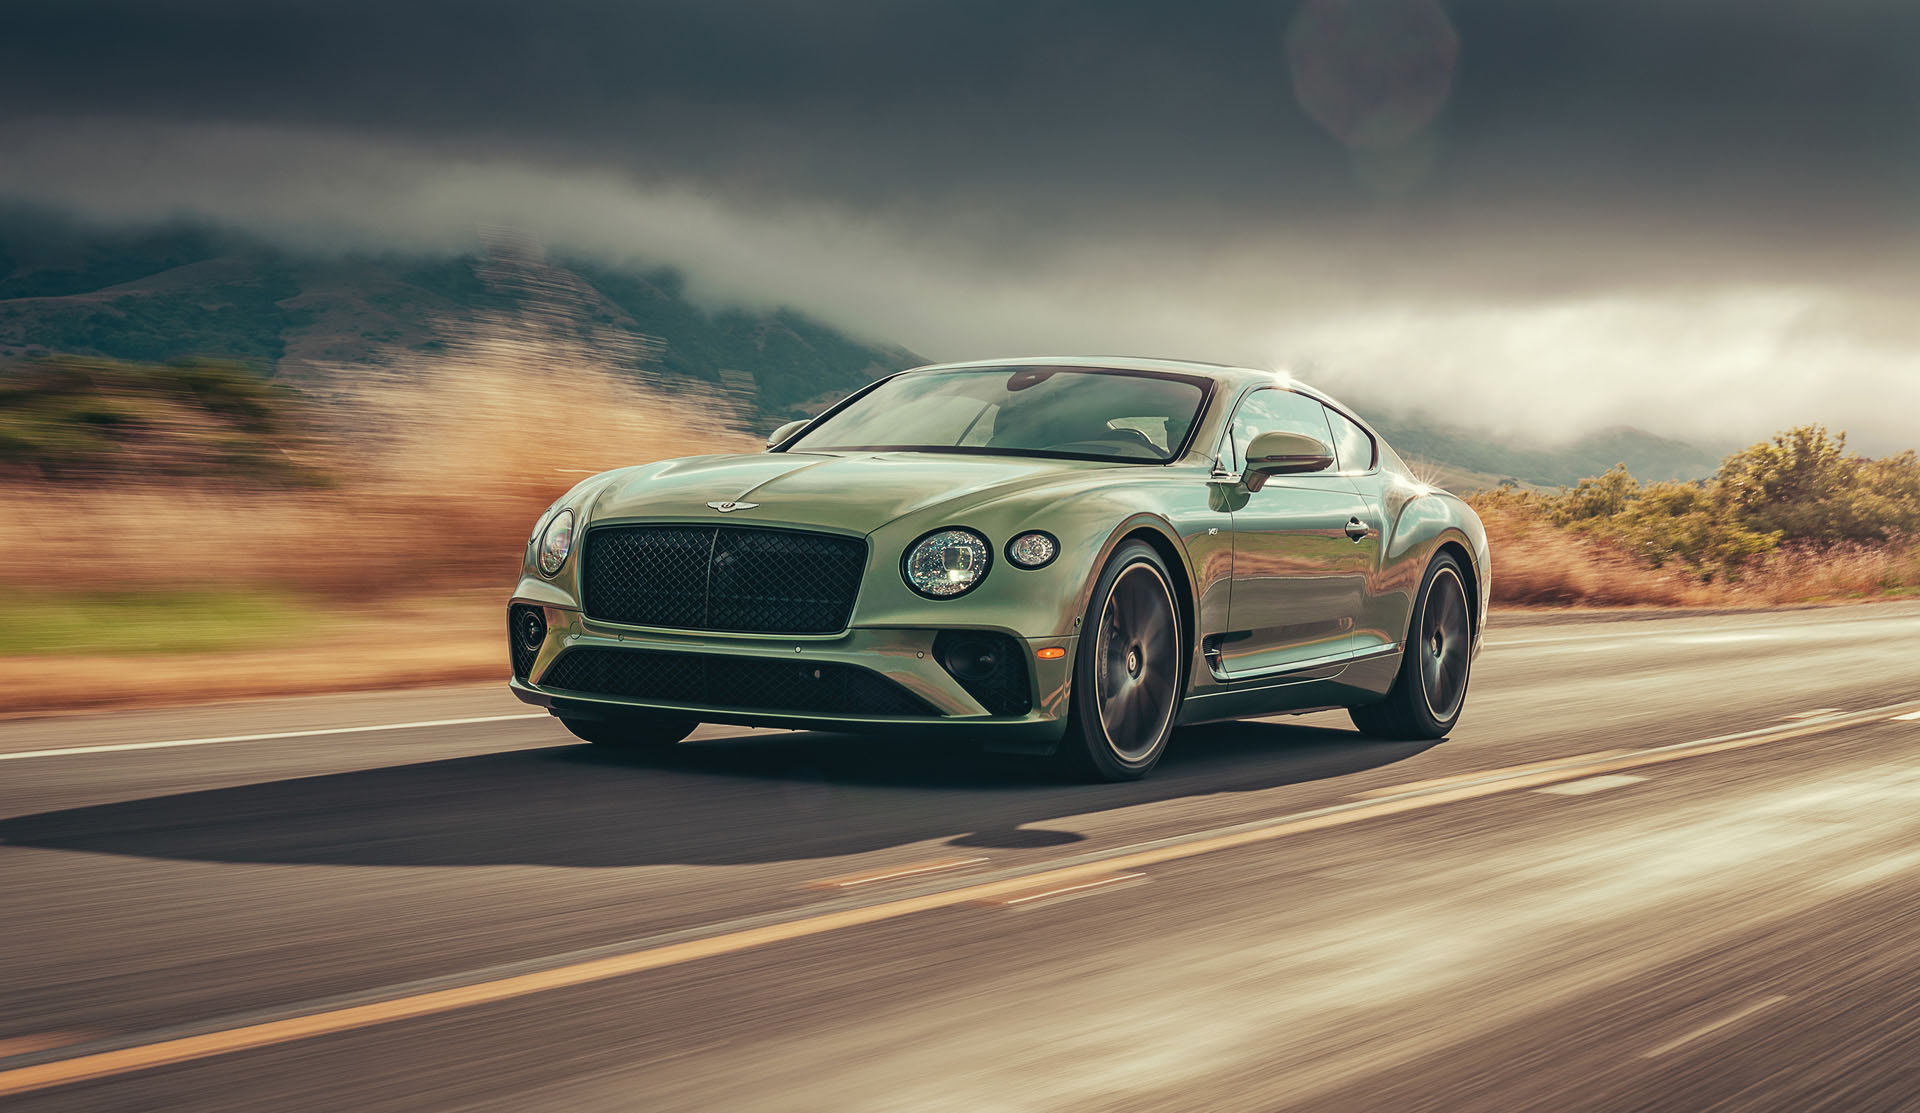 2020 Bentley Continental GT preview: Optional V-8 power